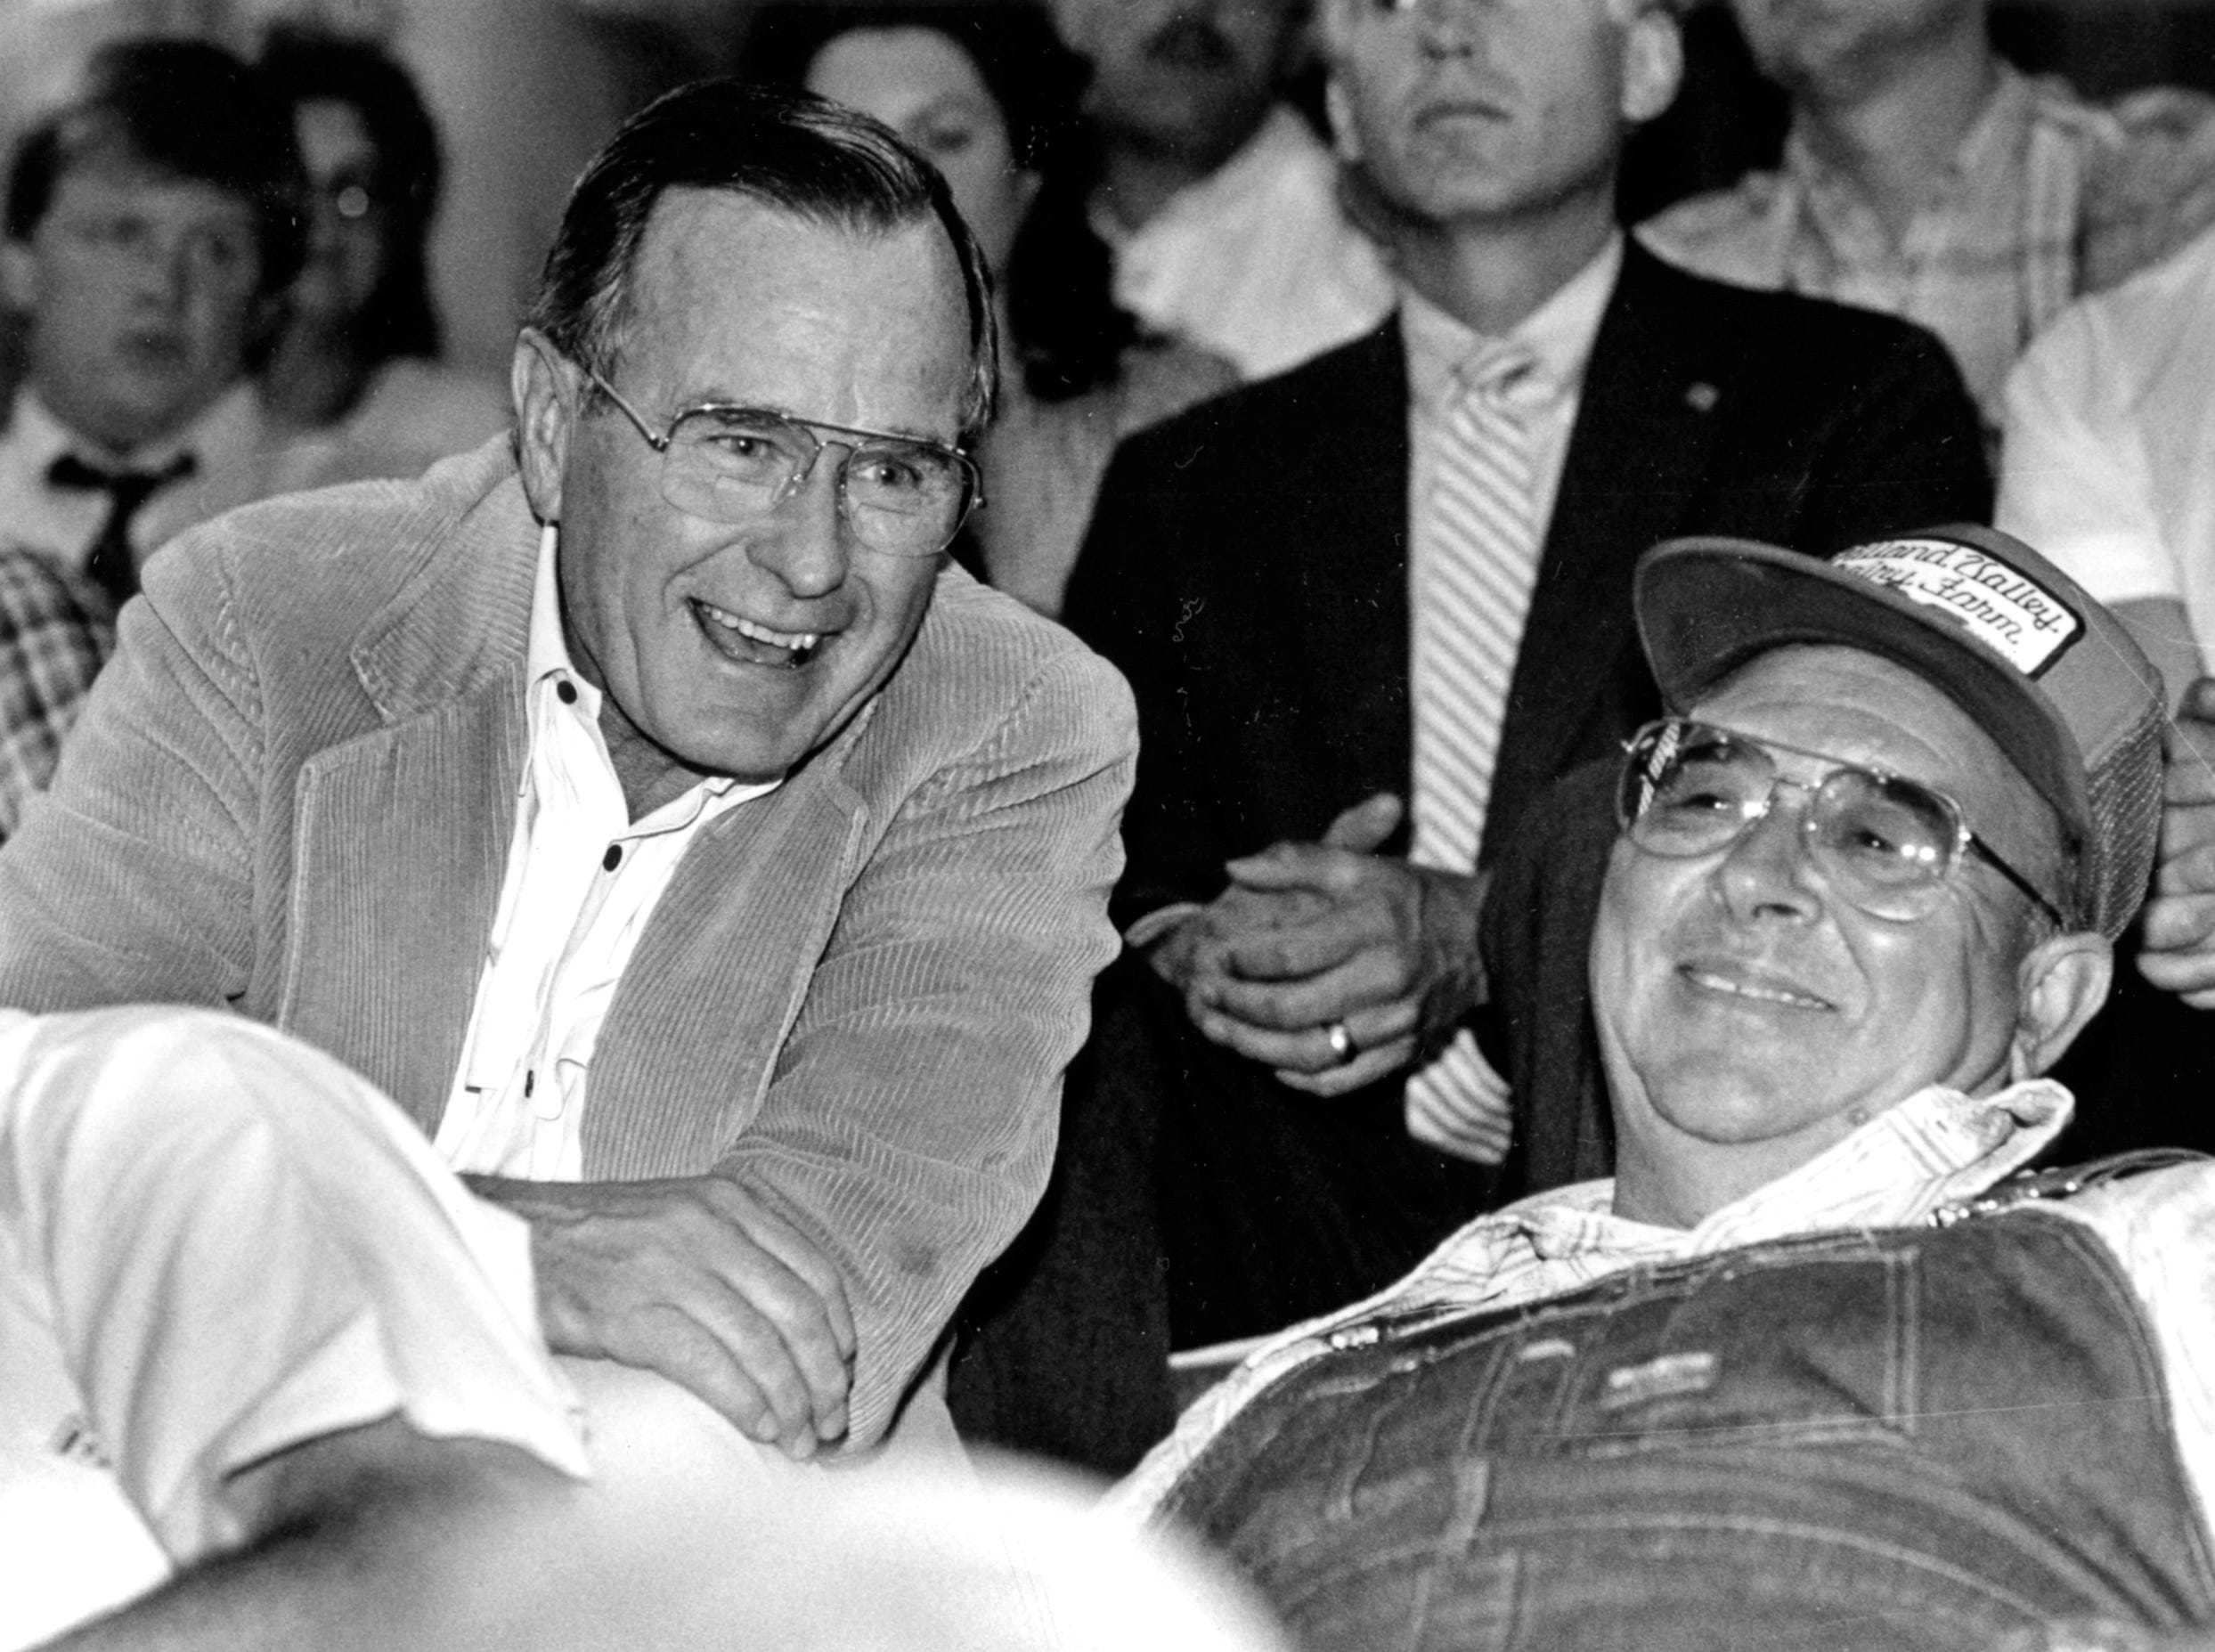 June 29, 1988. Vice President George H. W. Bush sits with Gordon Gruenstern in the stands of the Livestock Producers arena in Marion, Wisconsin. Post-Crescent photo by Scott Whitcomb.